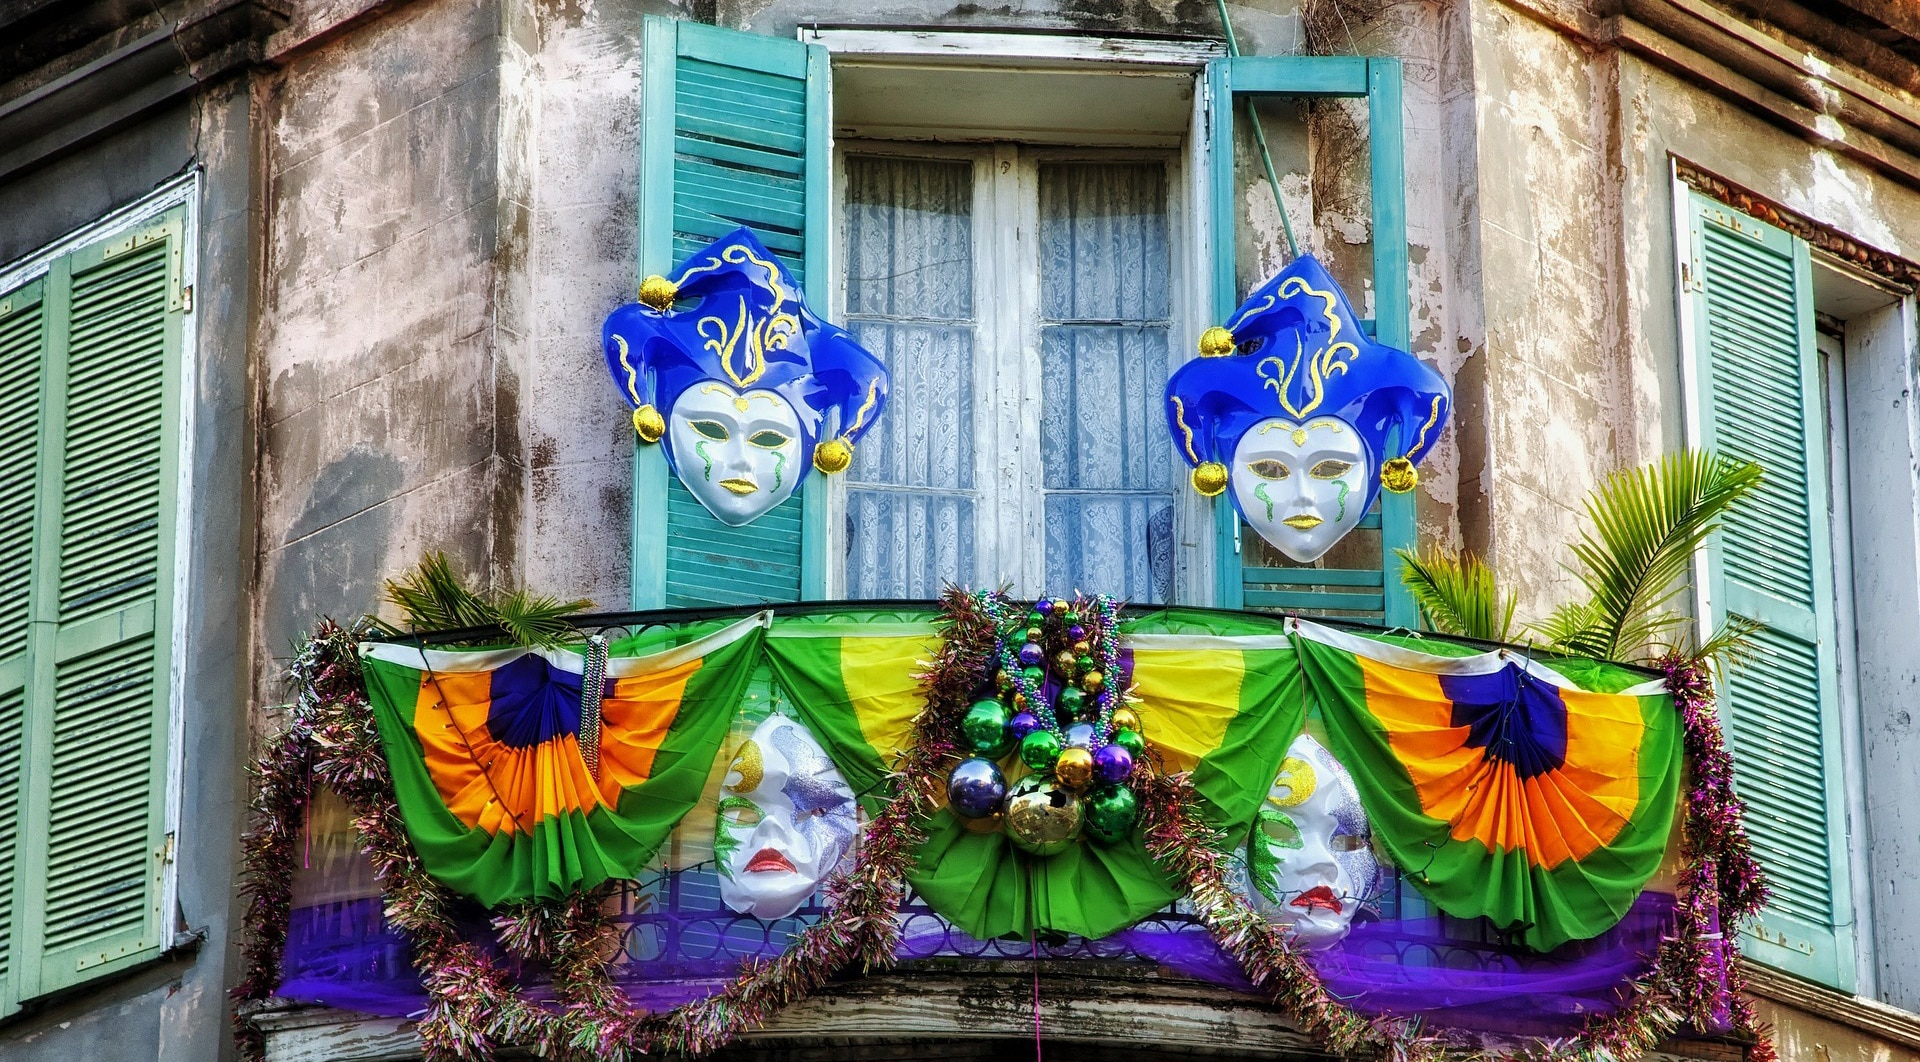 Mardi Gras masks adorn a balcony in New Orleans' French Quarter.